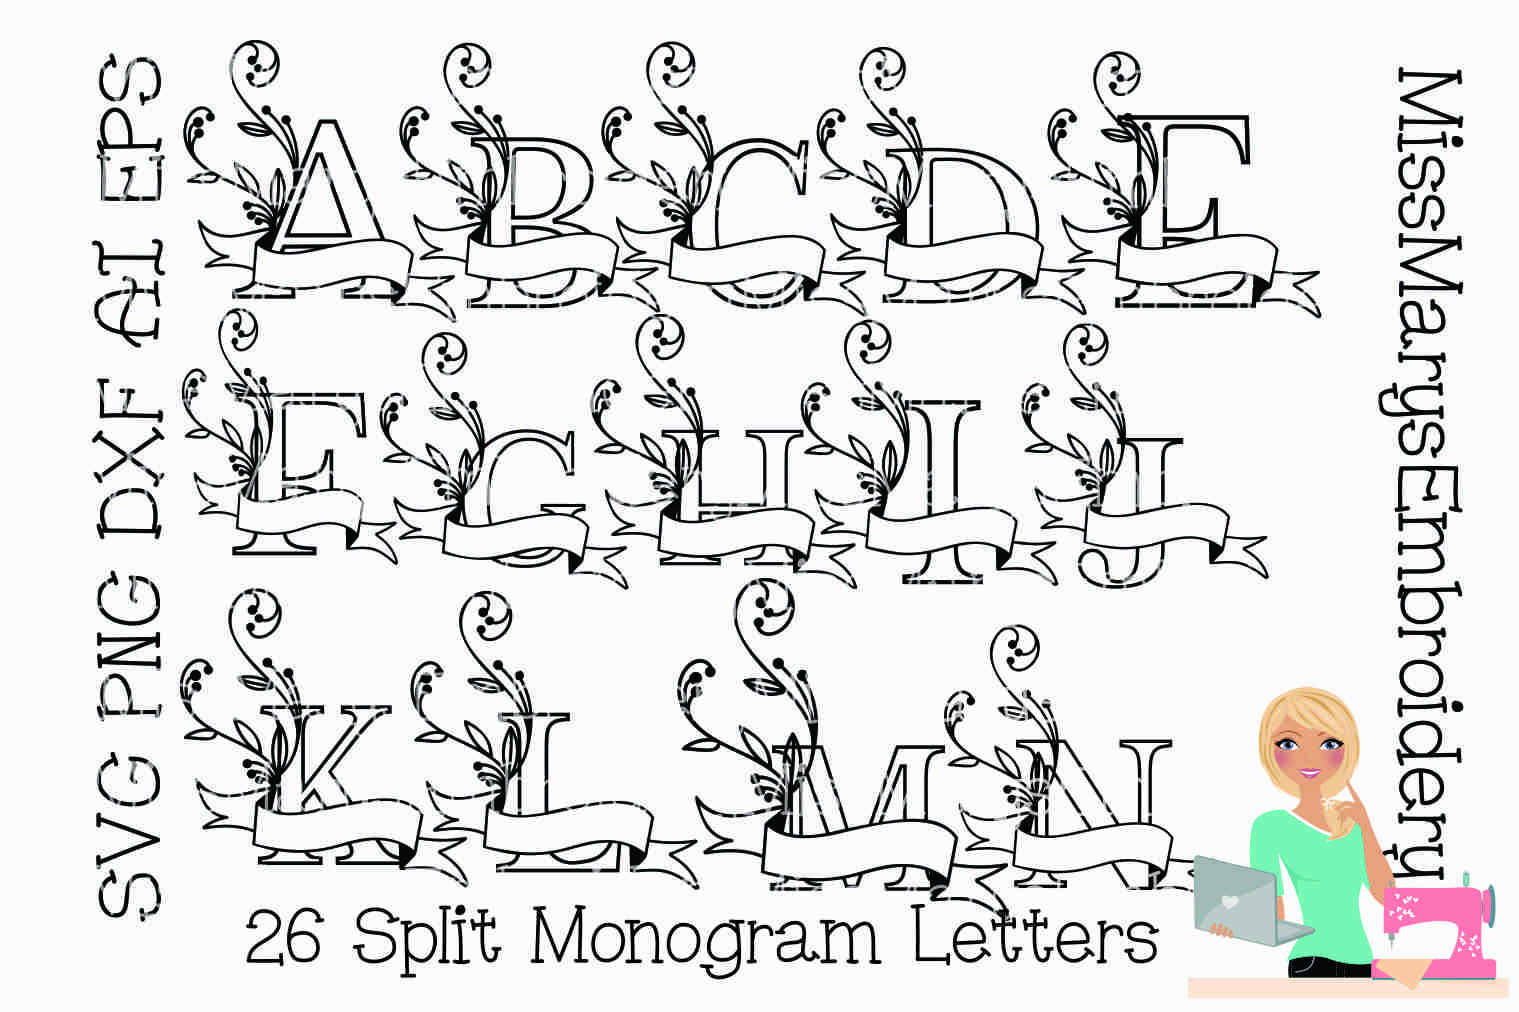 Split Monogram Letters SVG Cutting File PNG DXF AI EPS example image 2